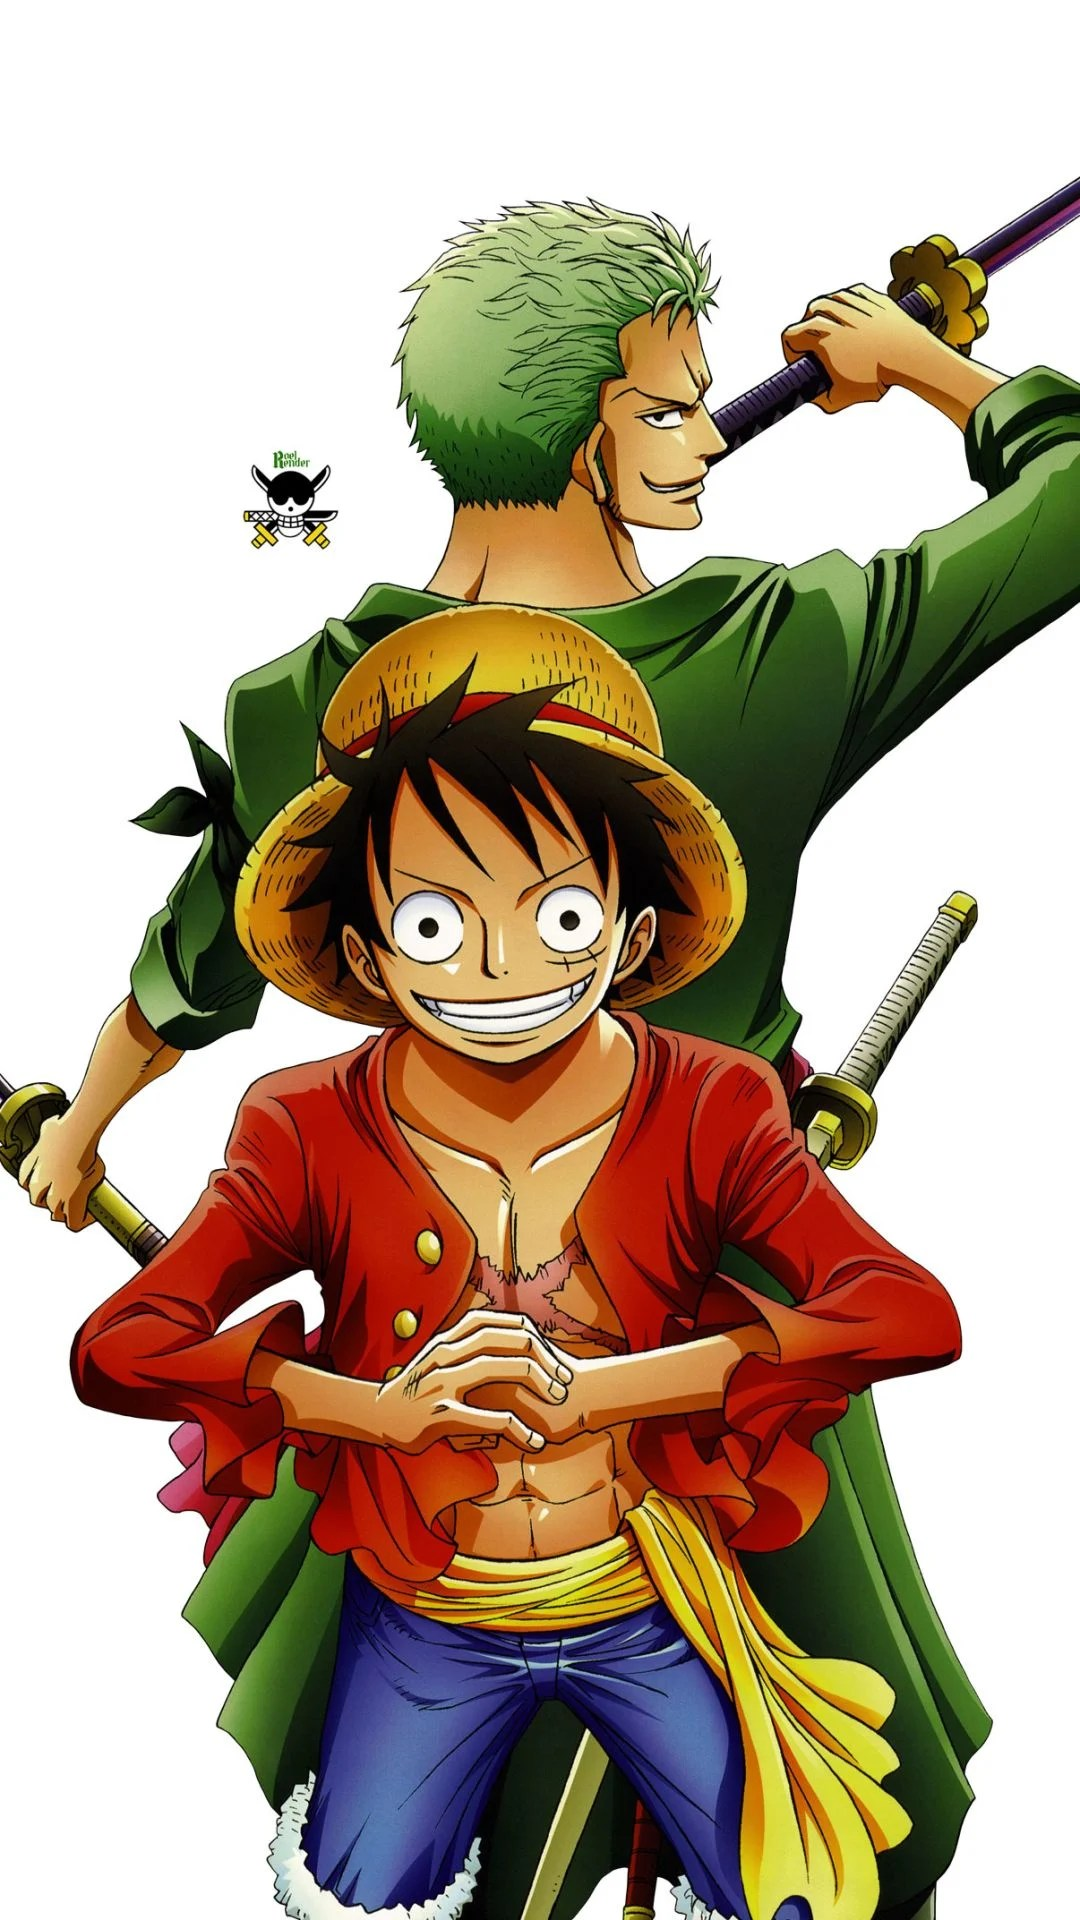 Rd.com arts & entertainment quotes you need to remind yourself of this every day, so why not make it your phone background? One Piece iPhone Wallpapers - Top Free One Piece iPhone ...